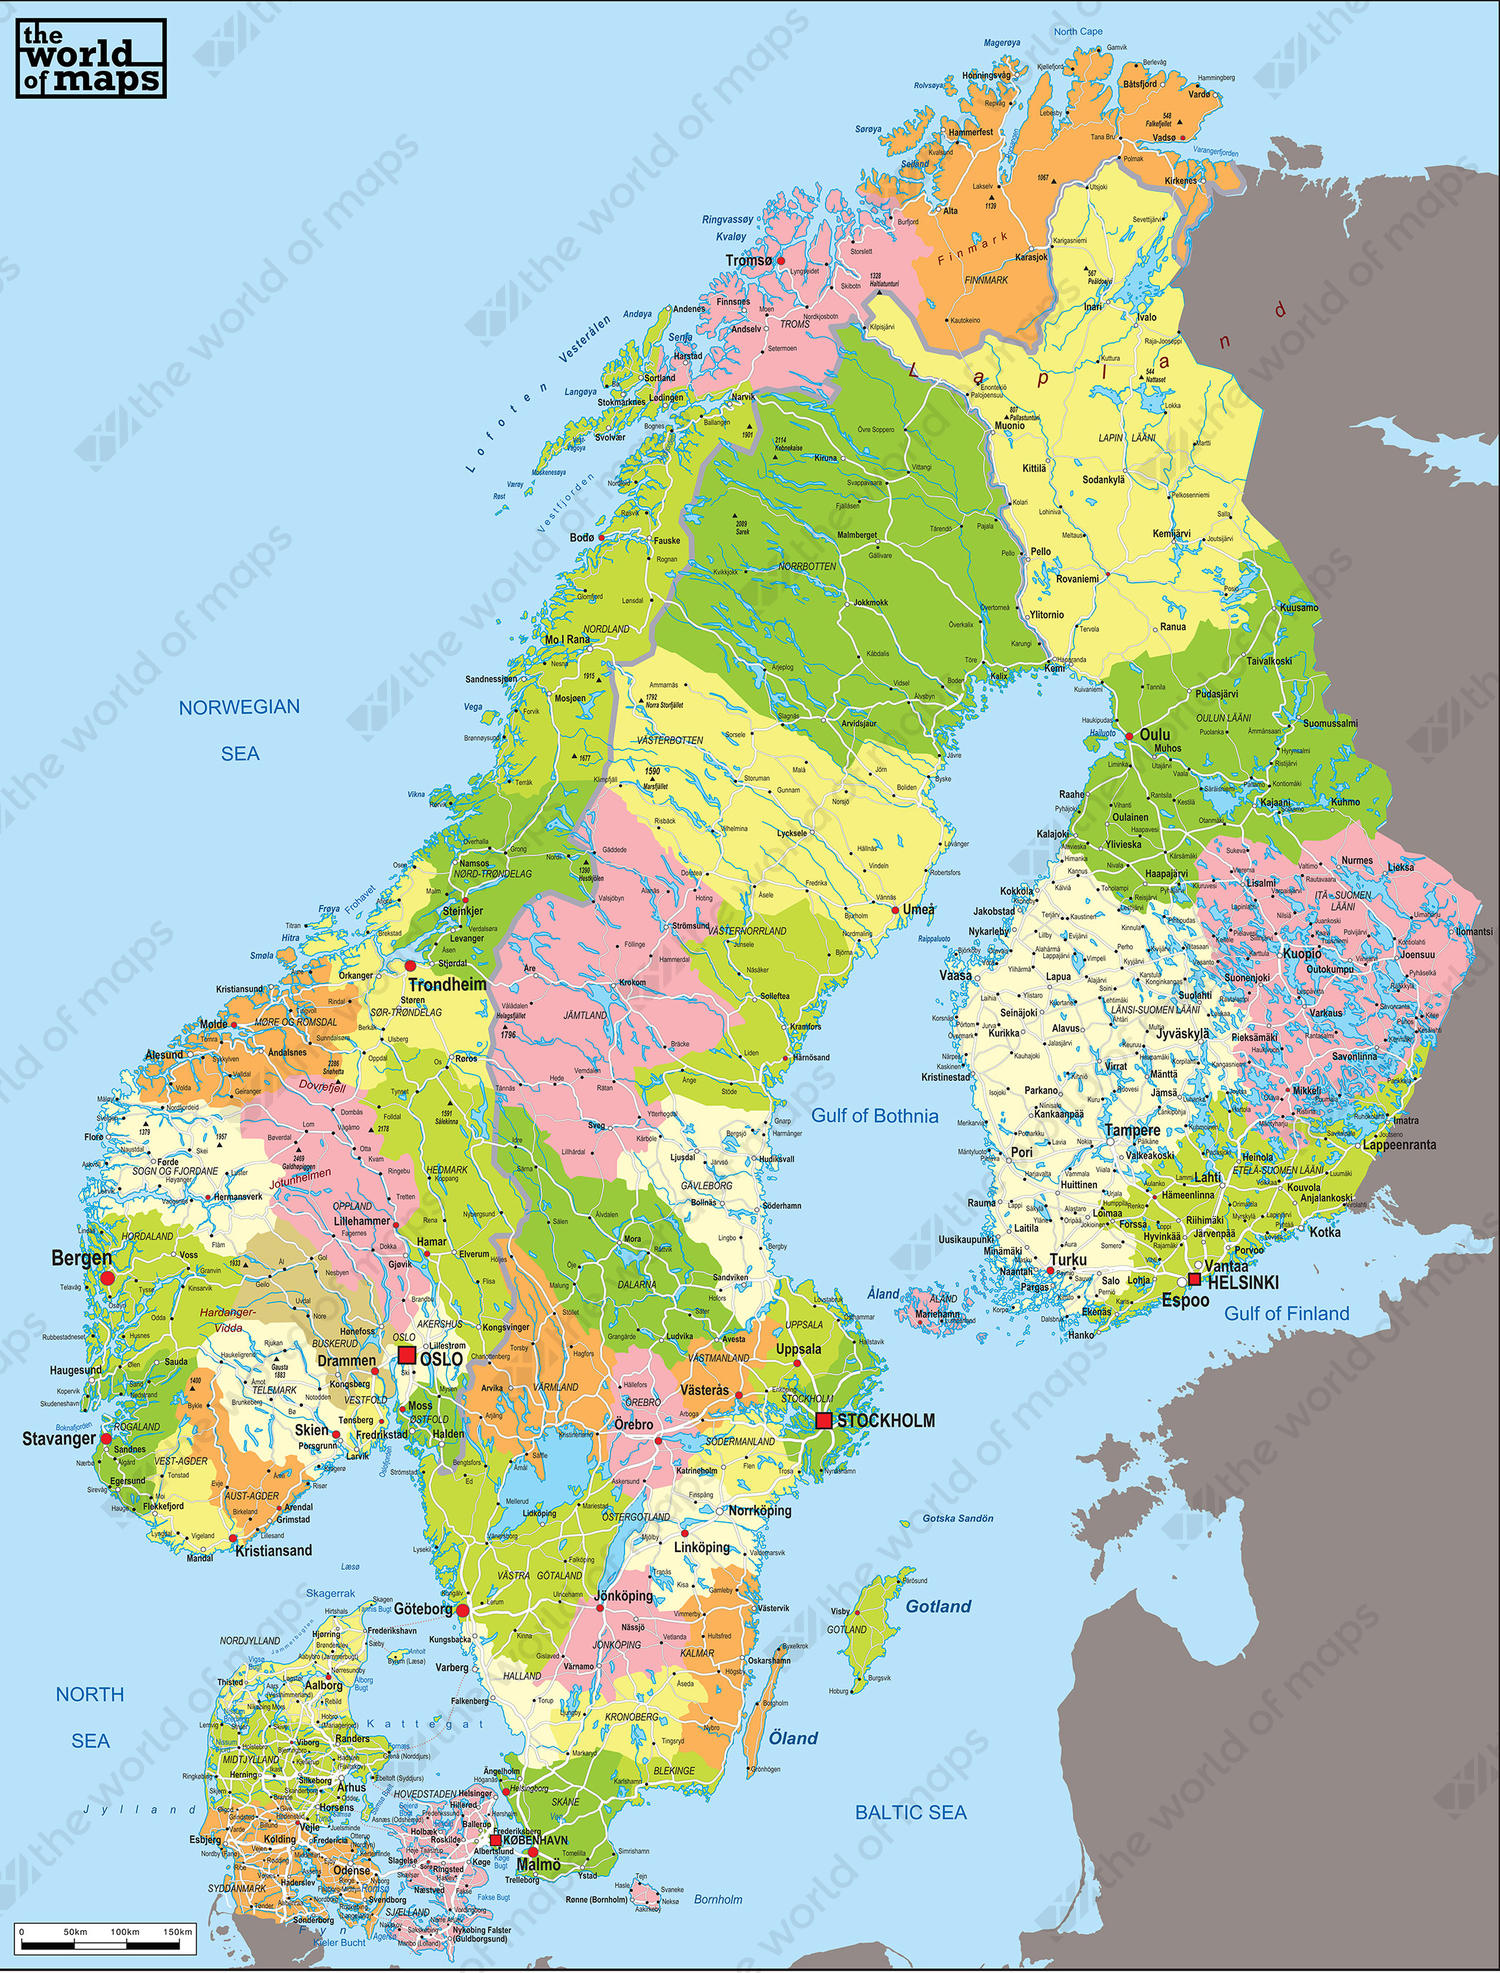 Digital Political Map Scandinavia 53 | The World of Maps.com